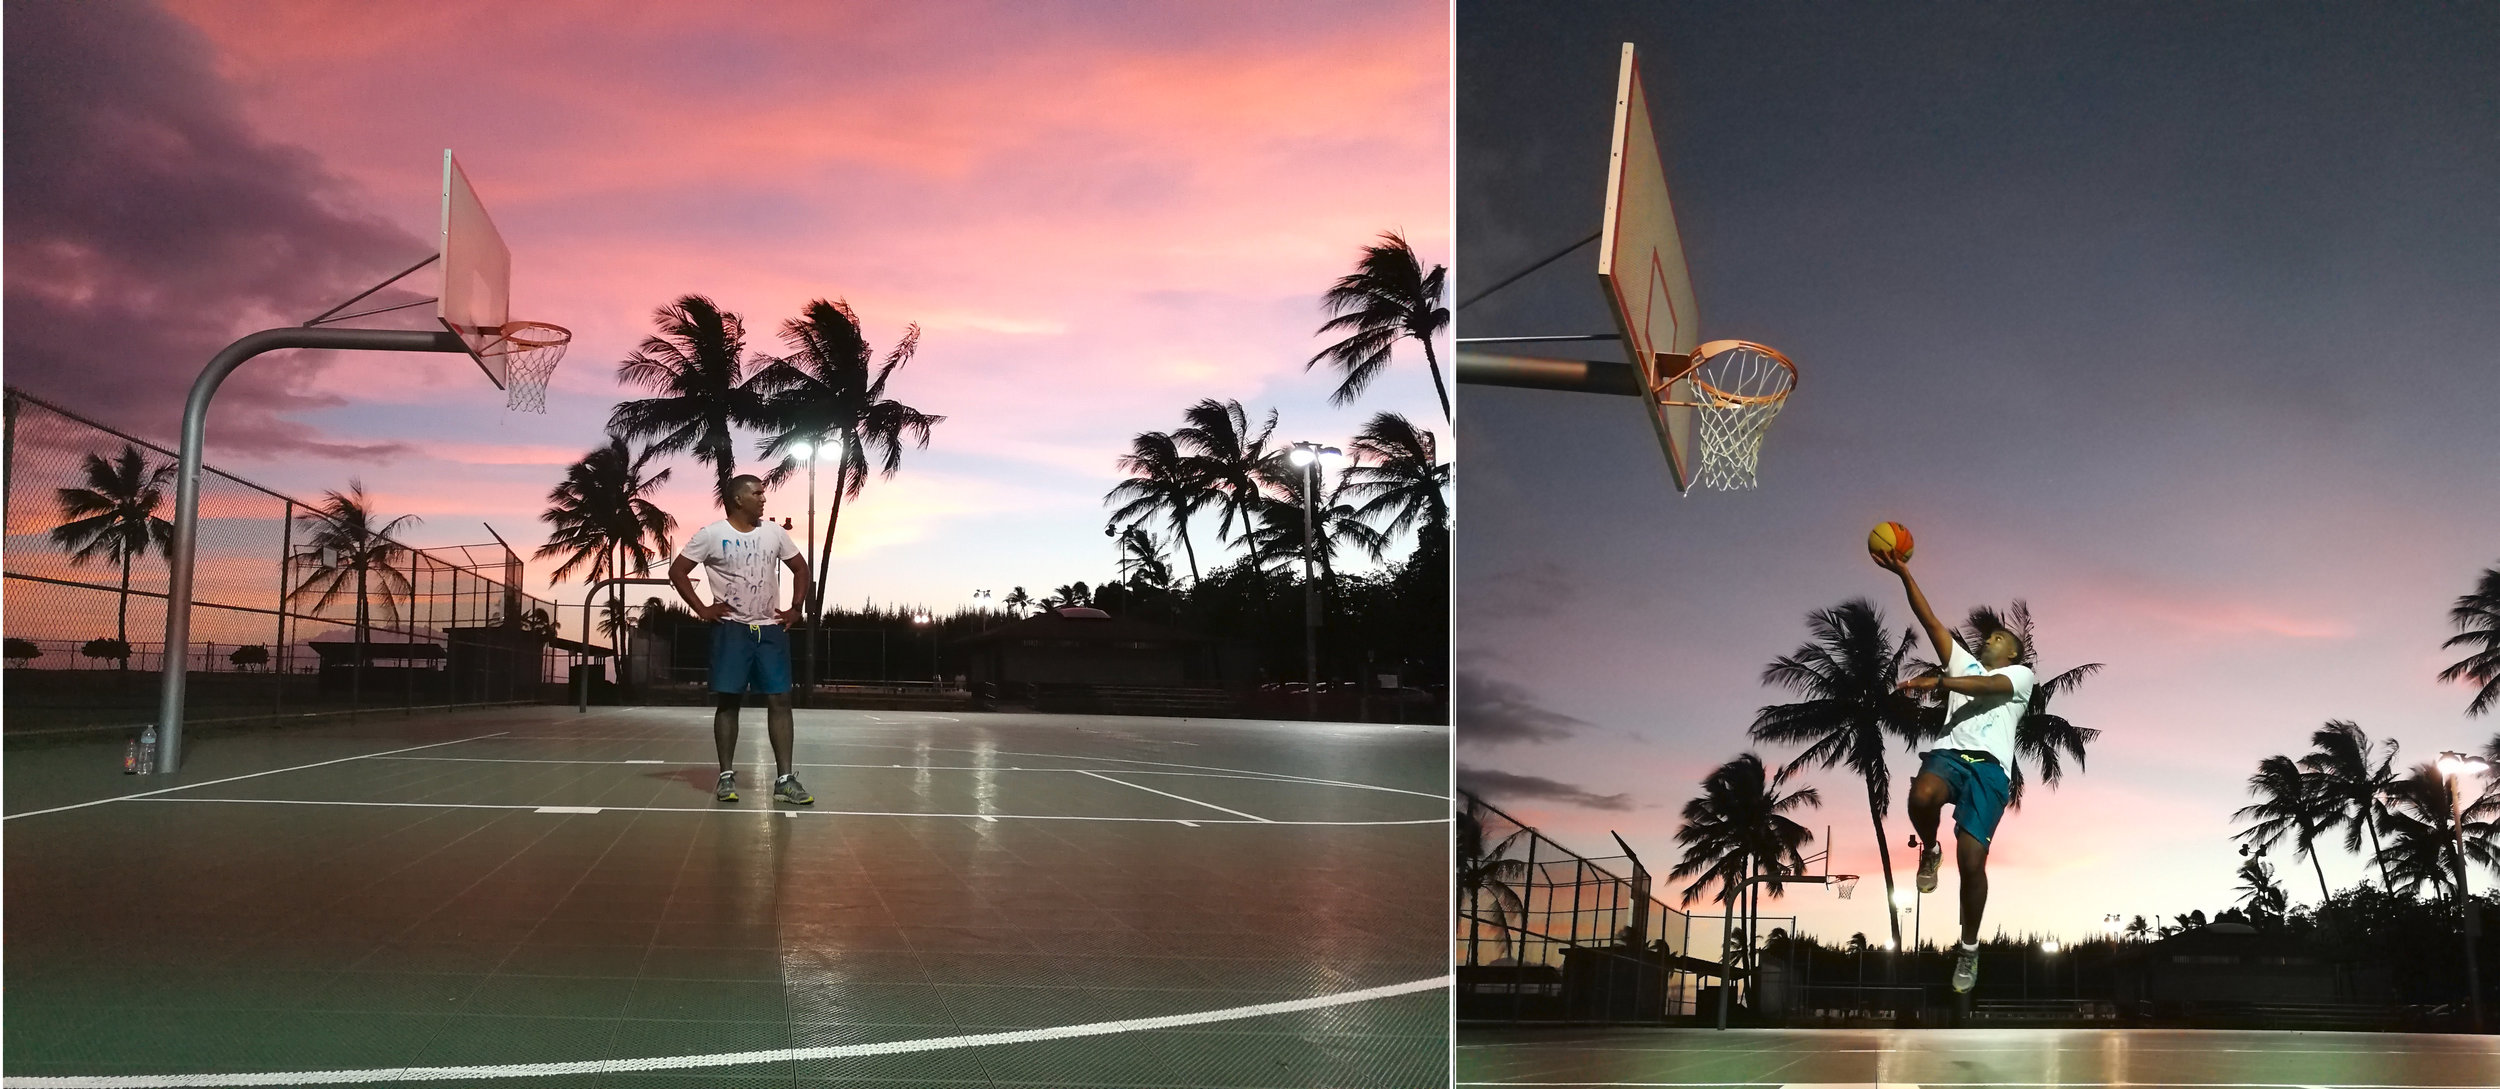 Basketball - Maui Island, Hawaï